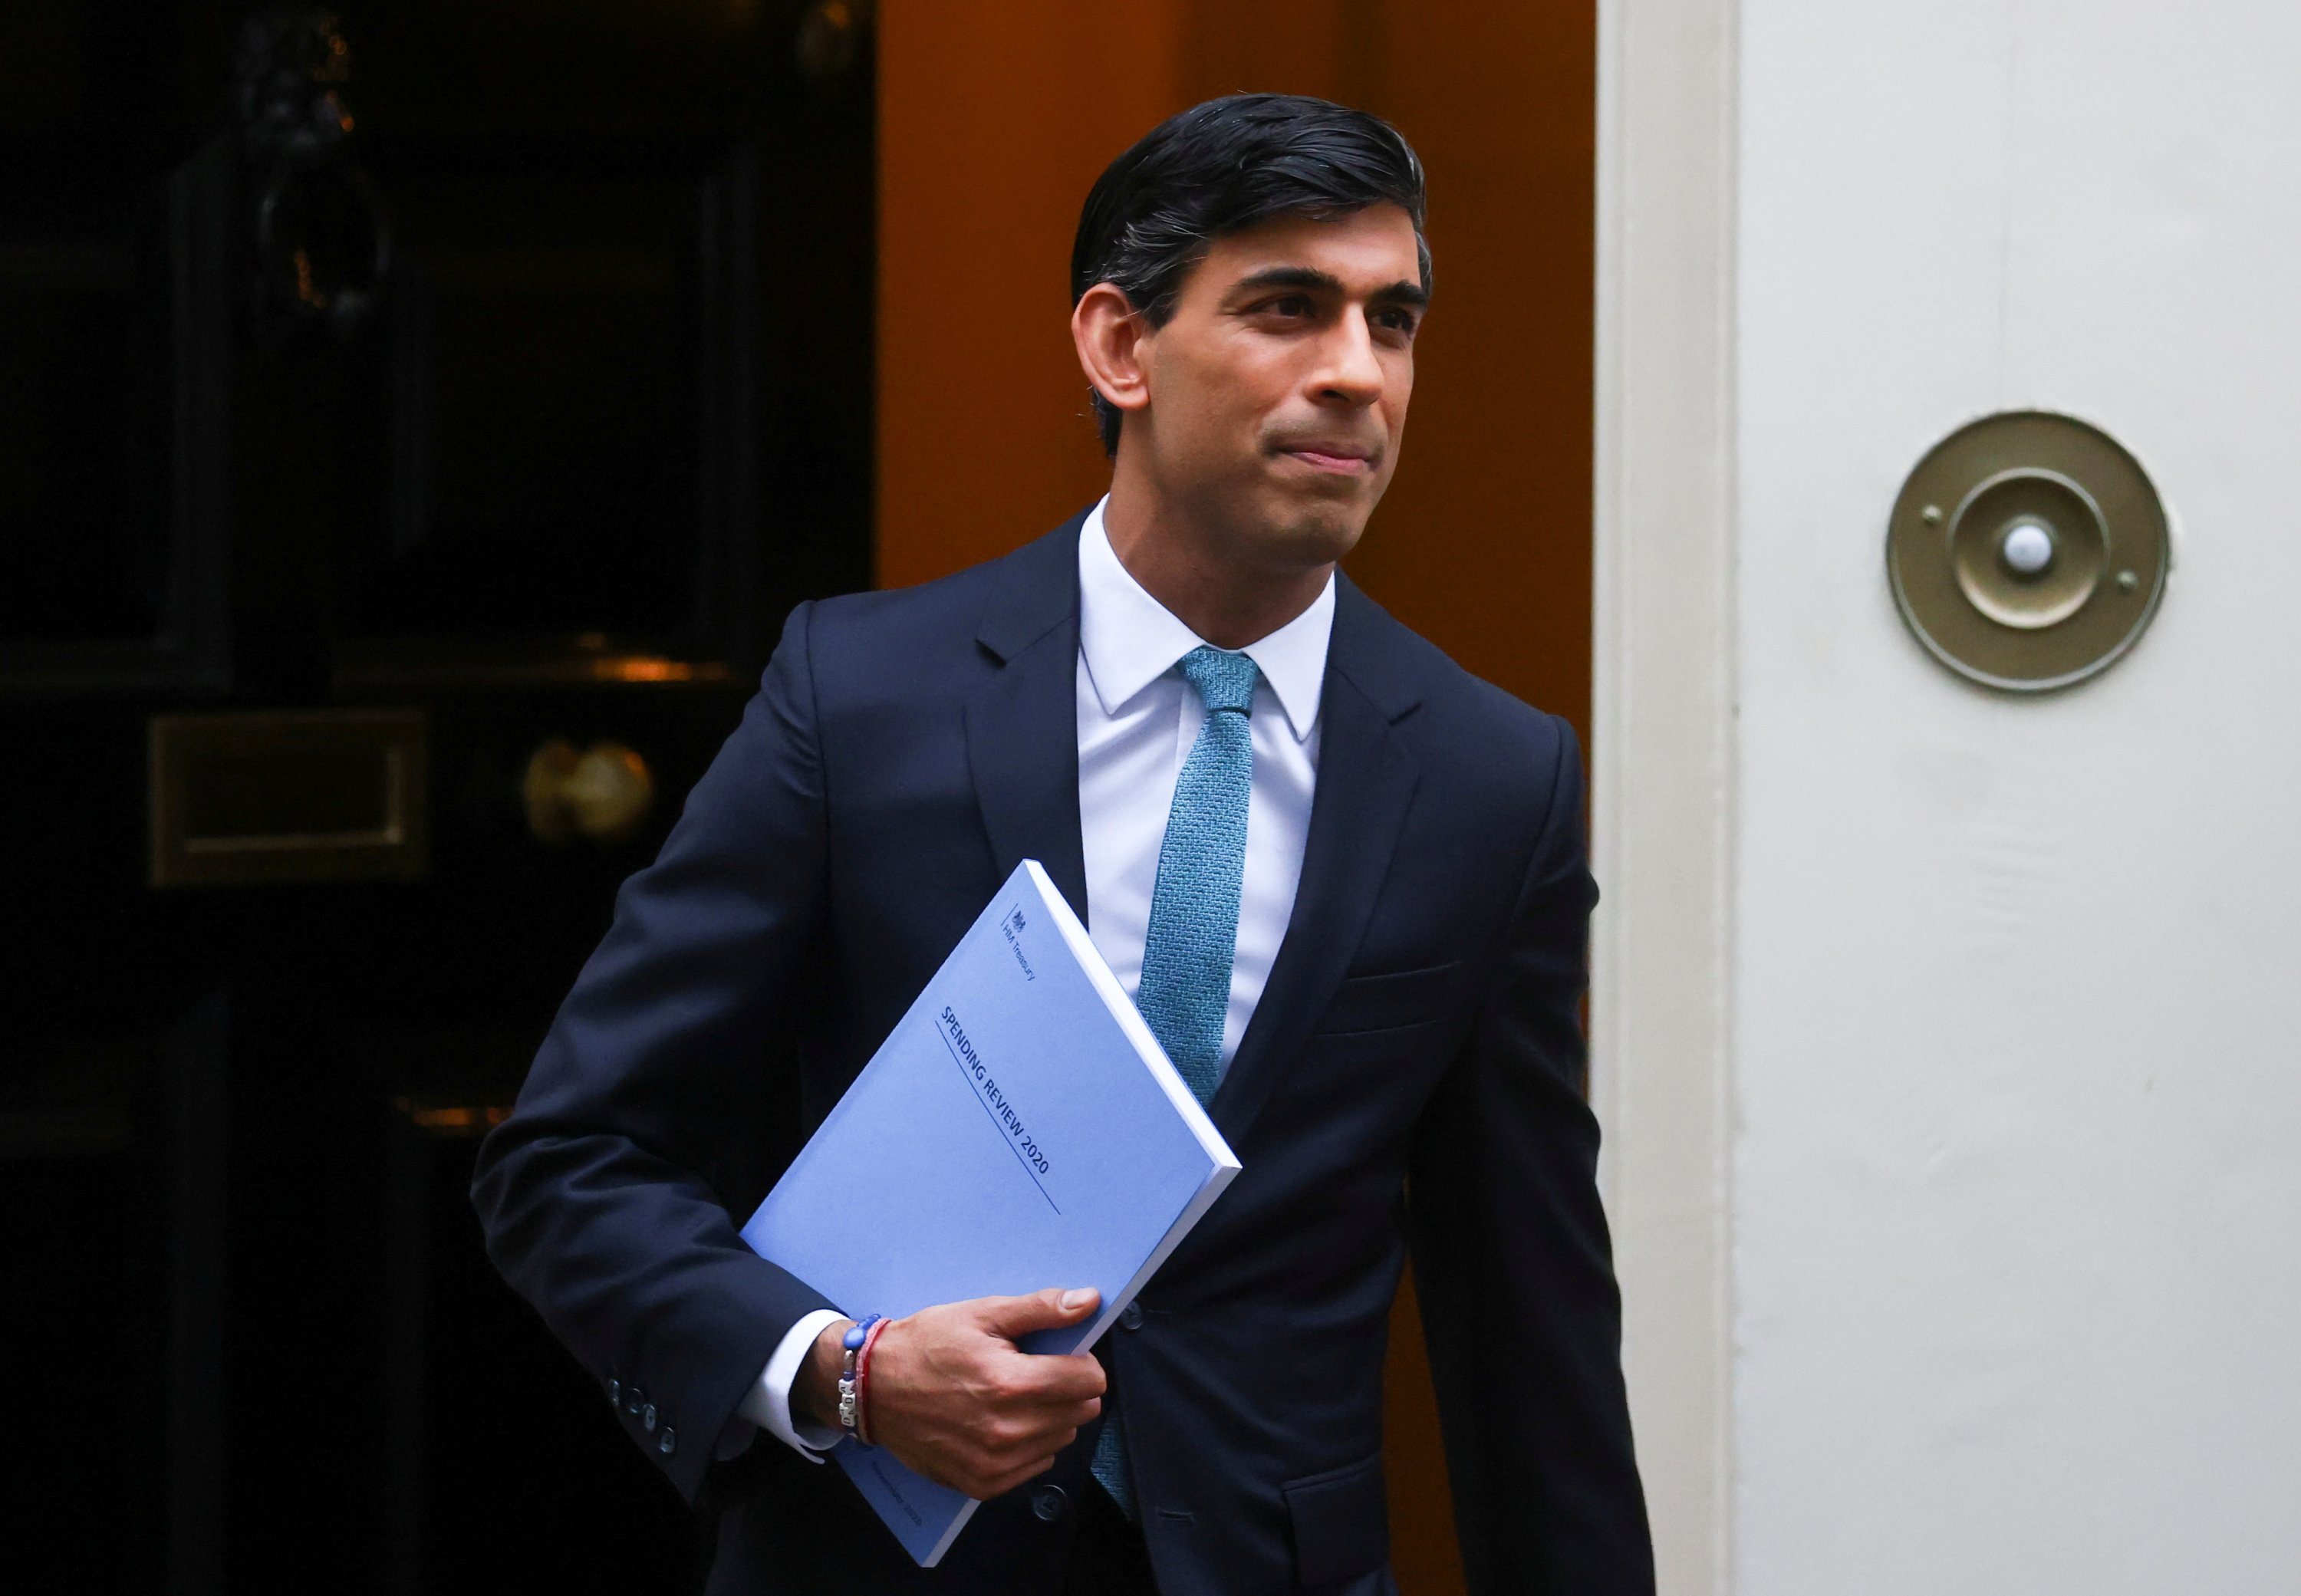 Britain's Chancellor of the Exchequer Rishi Sunak leaves Downing Street, London, Britain, Nov. 25, 2020. (Reuters Photo)